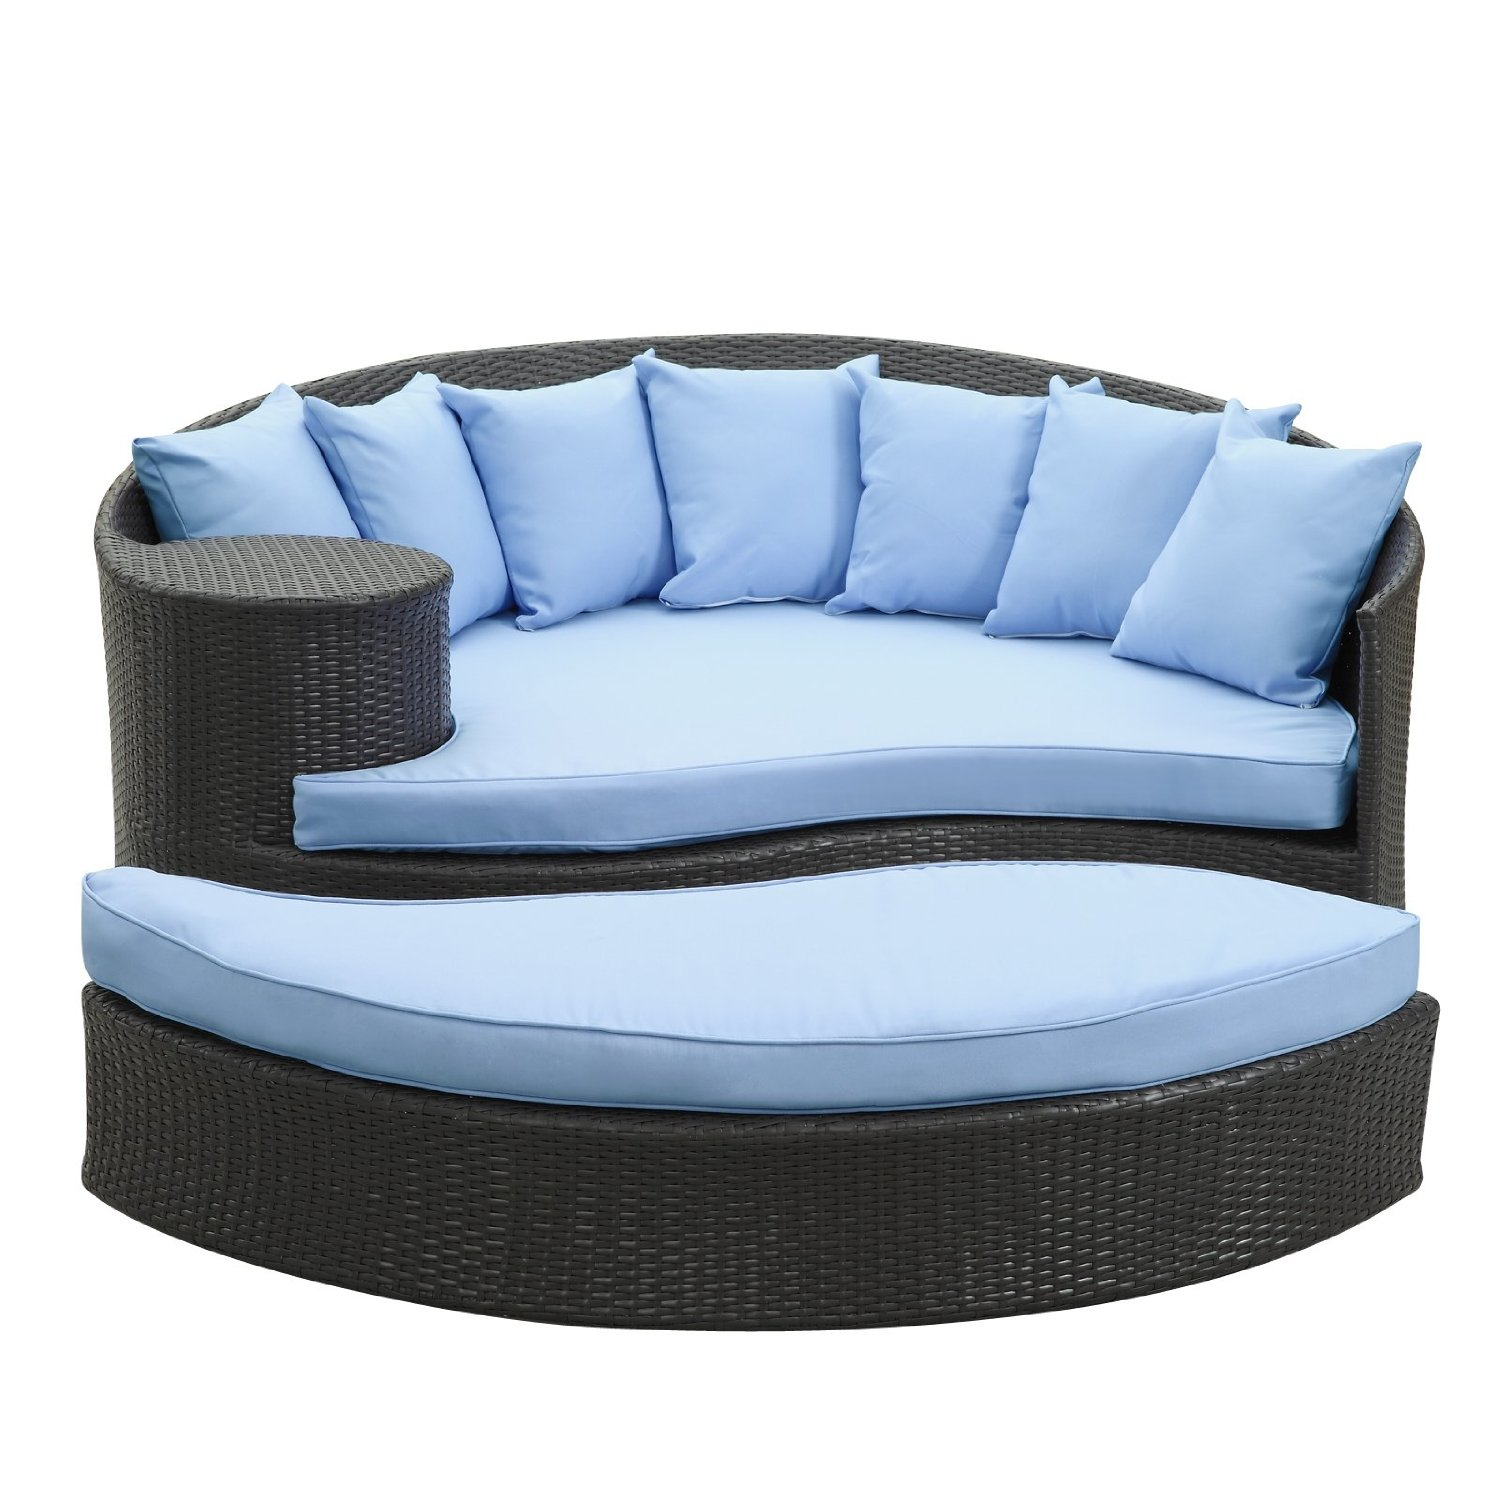 Outdoor Daybeds For Sale Outdoor Daybed For Sale